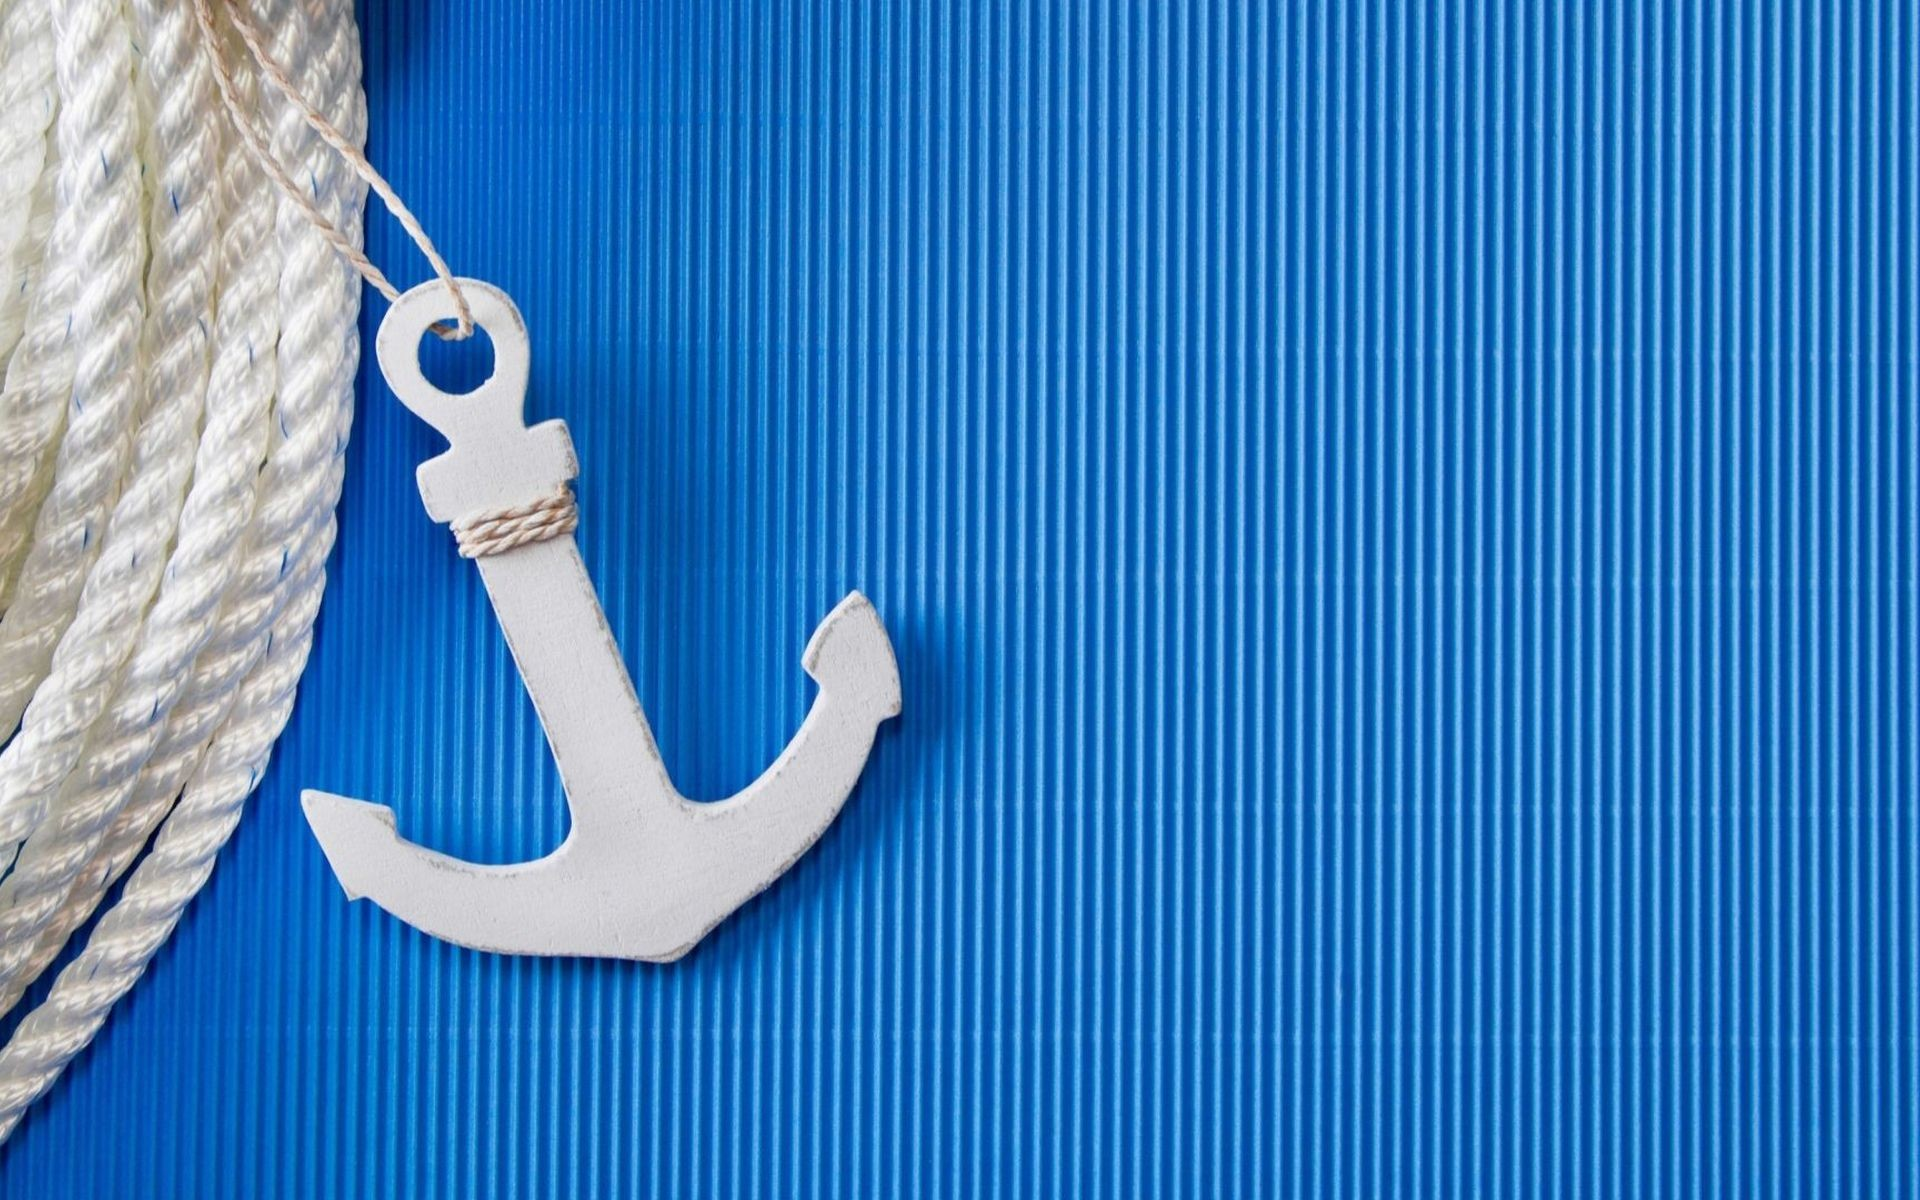 Res: 1920x1200, Anchor wallpapers? on Pinterest Anchor Wallpaper - HD Wallpapers